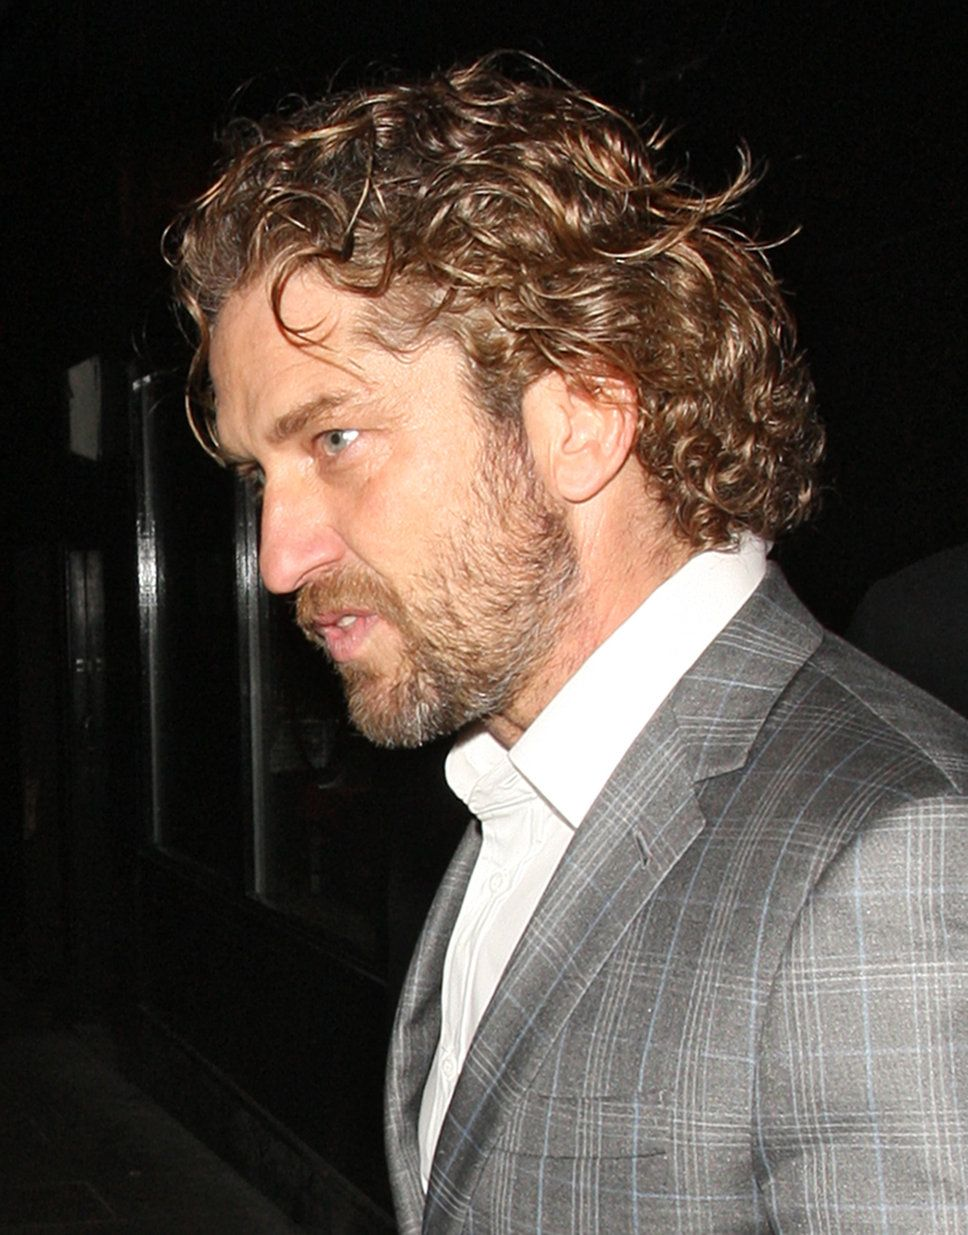 The Loose Curl Slick Back Best Curly Mens Hairstyles Loose Slick Back Men S Curly Hairstyles Curly Hair Men Curly Hair Photos